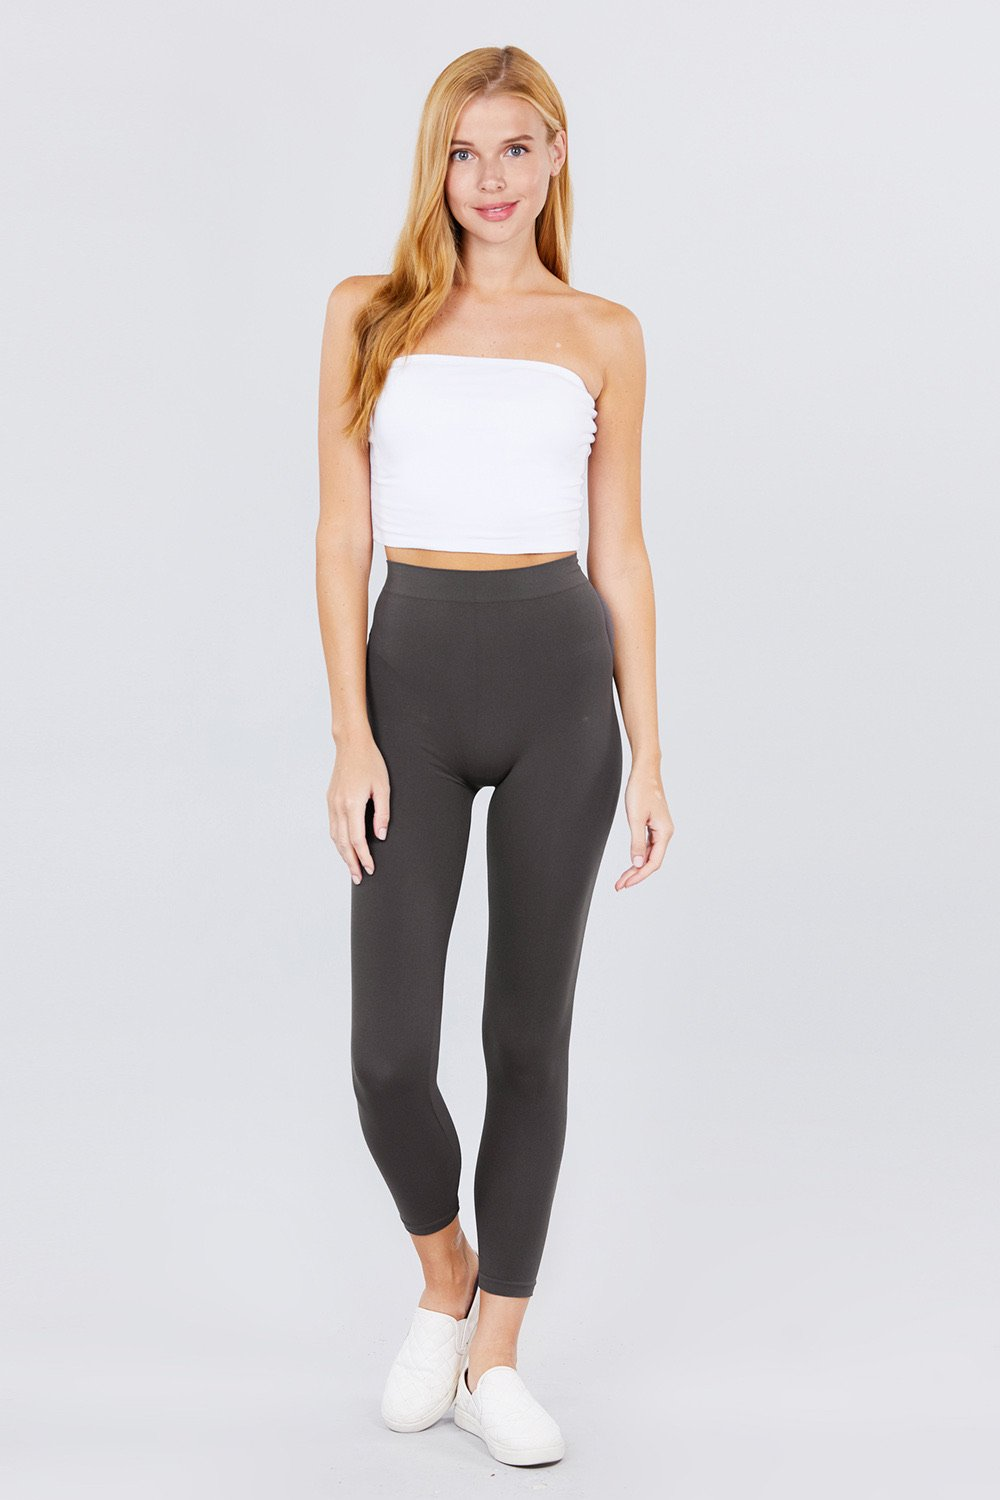 Charcoal Seamless Legging - RTS